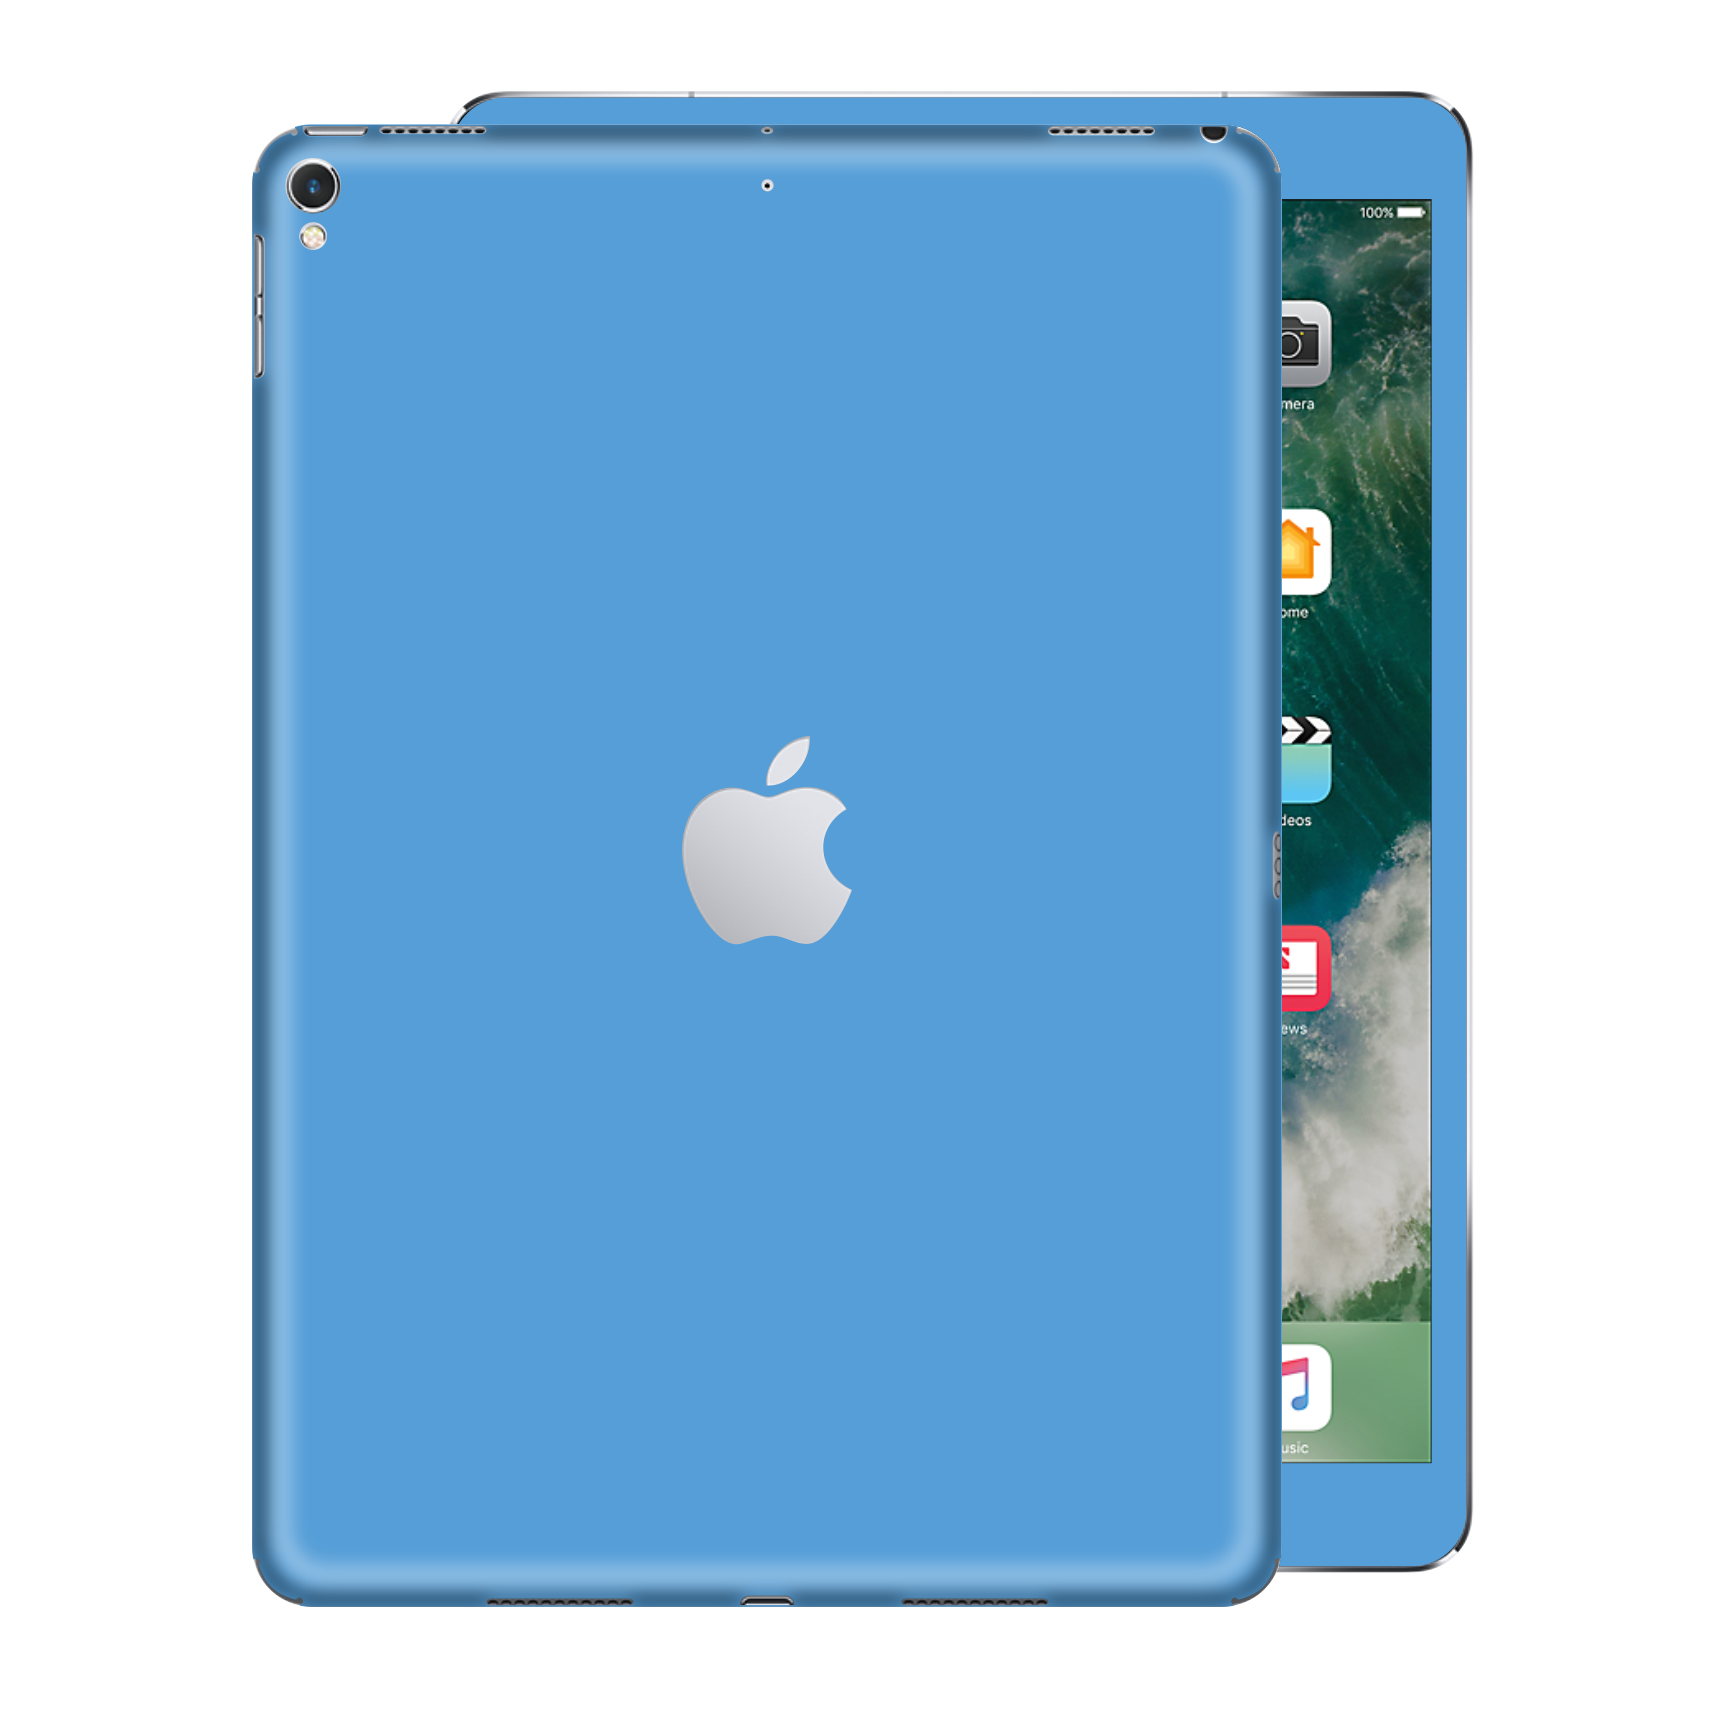 "iPad PRO 12.9"" inch 2nd edition 2017 SKY BLUE Gloss Glossy Skin, Decal, Wrap, Protector, Cover by EasySkinz 